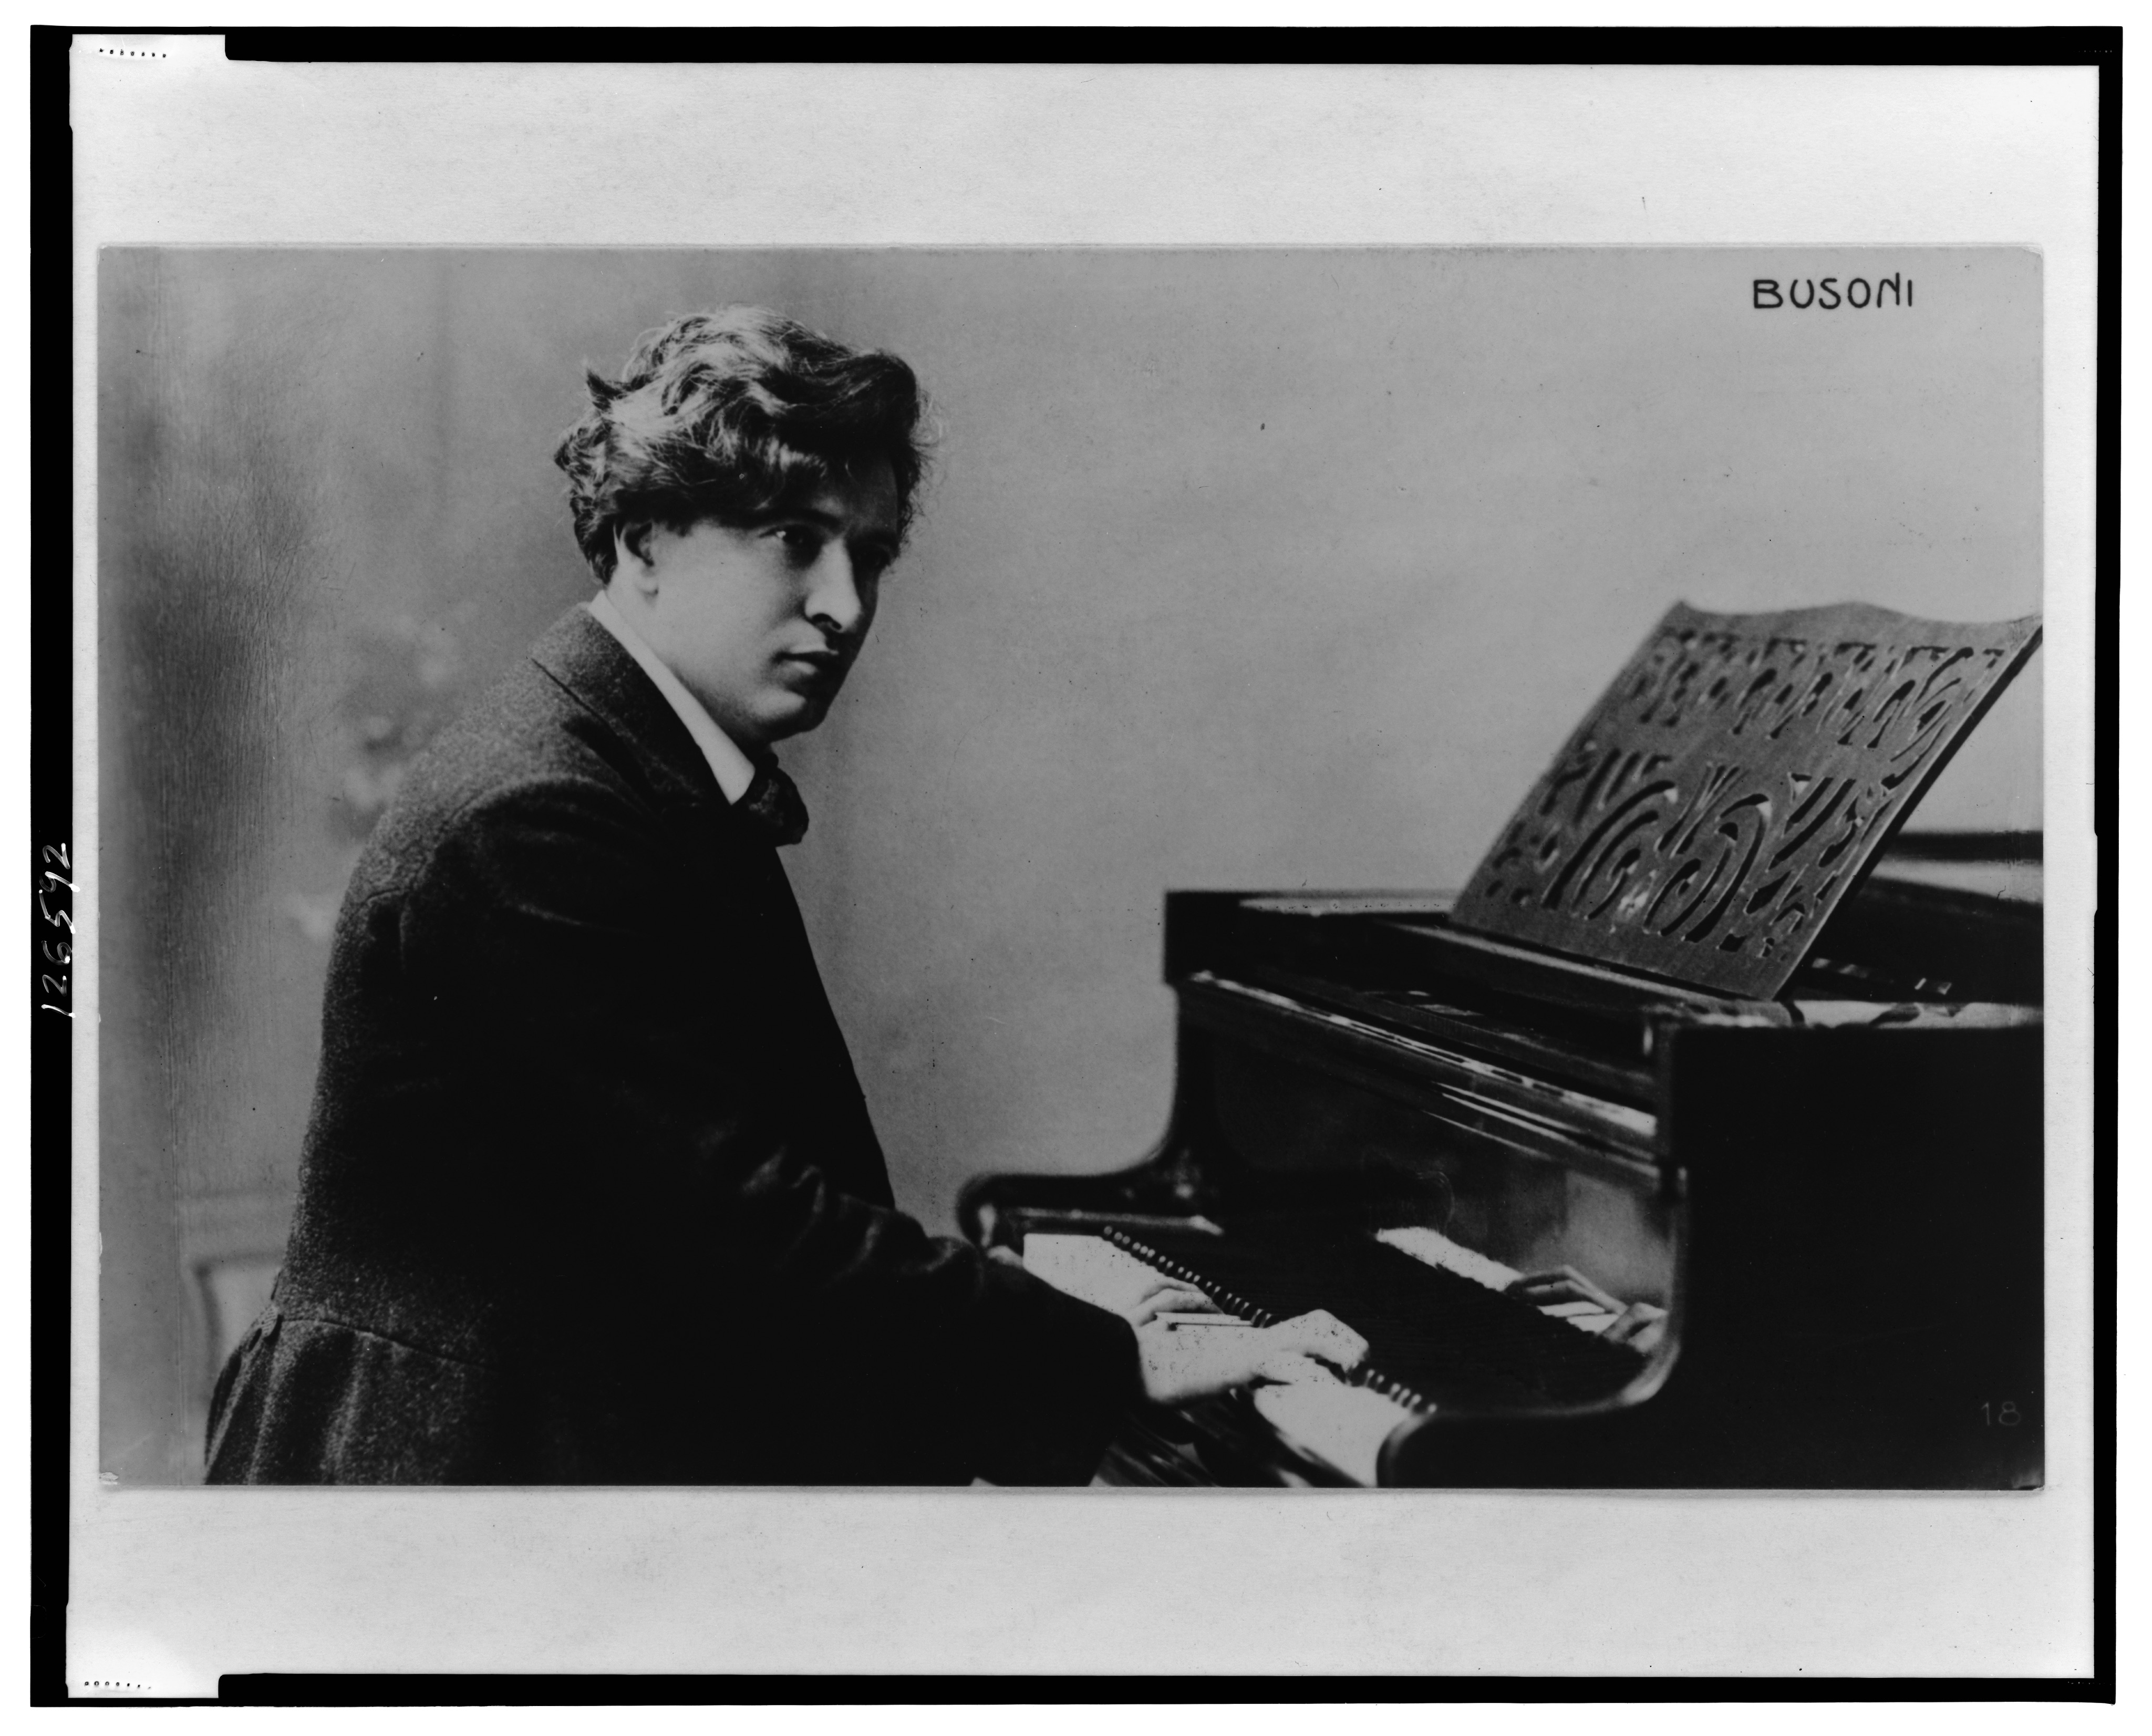 Ferruccio Busoni at the piano